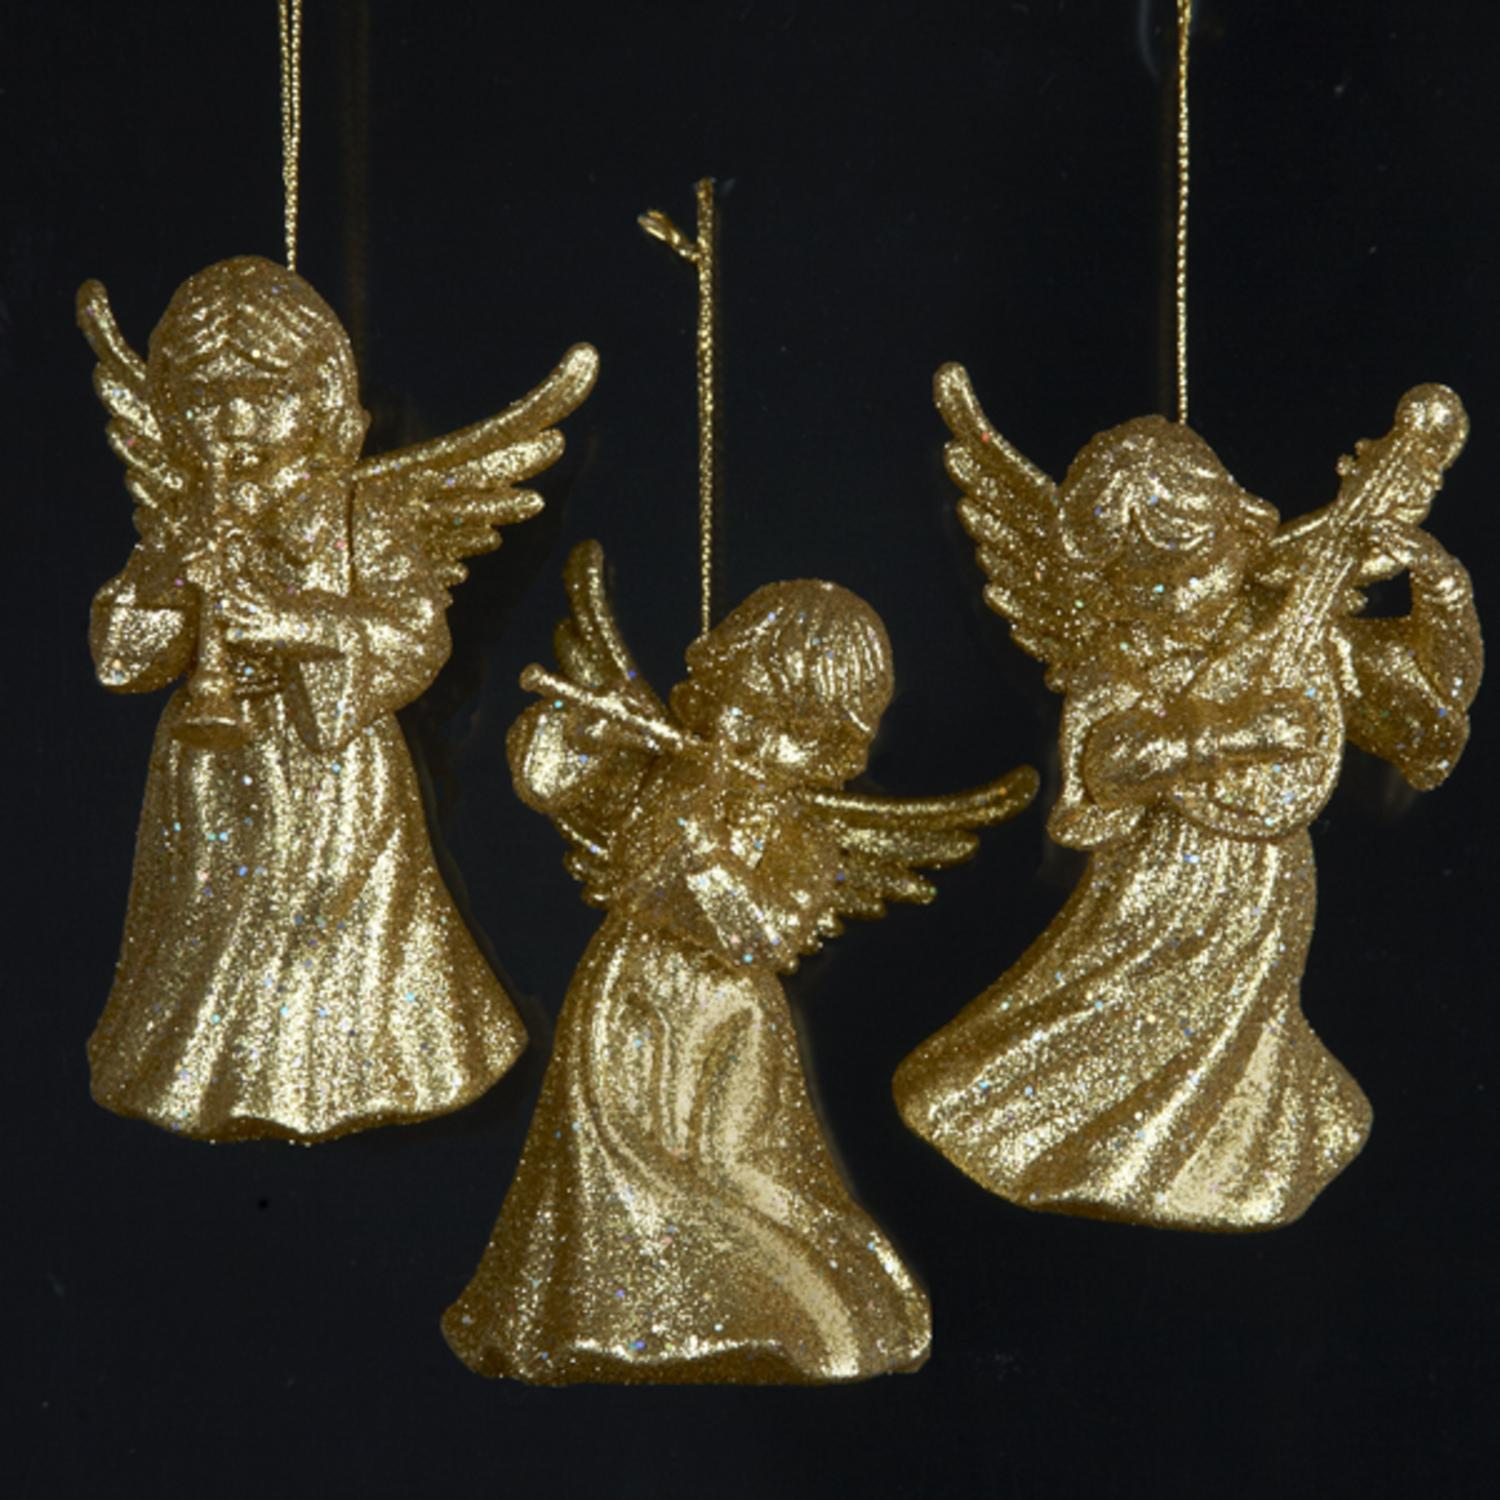 24 Gold Glitter Angel Holding A Musical Instrument Christmas Ornaments 3.75""